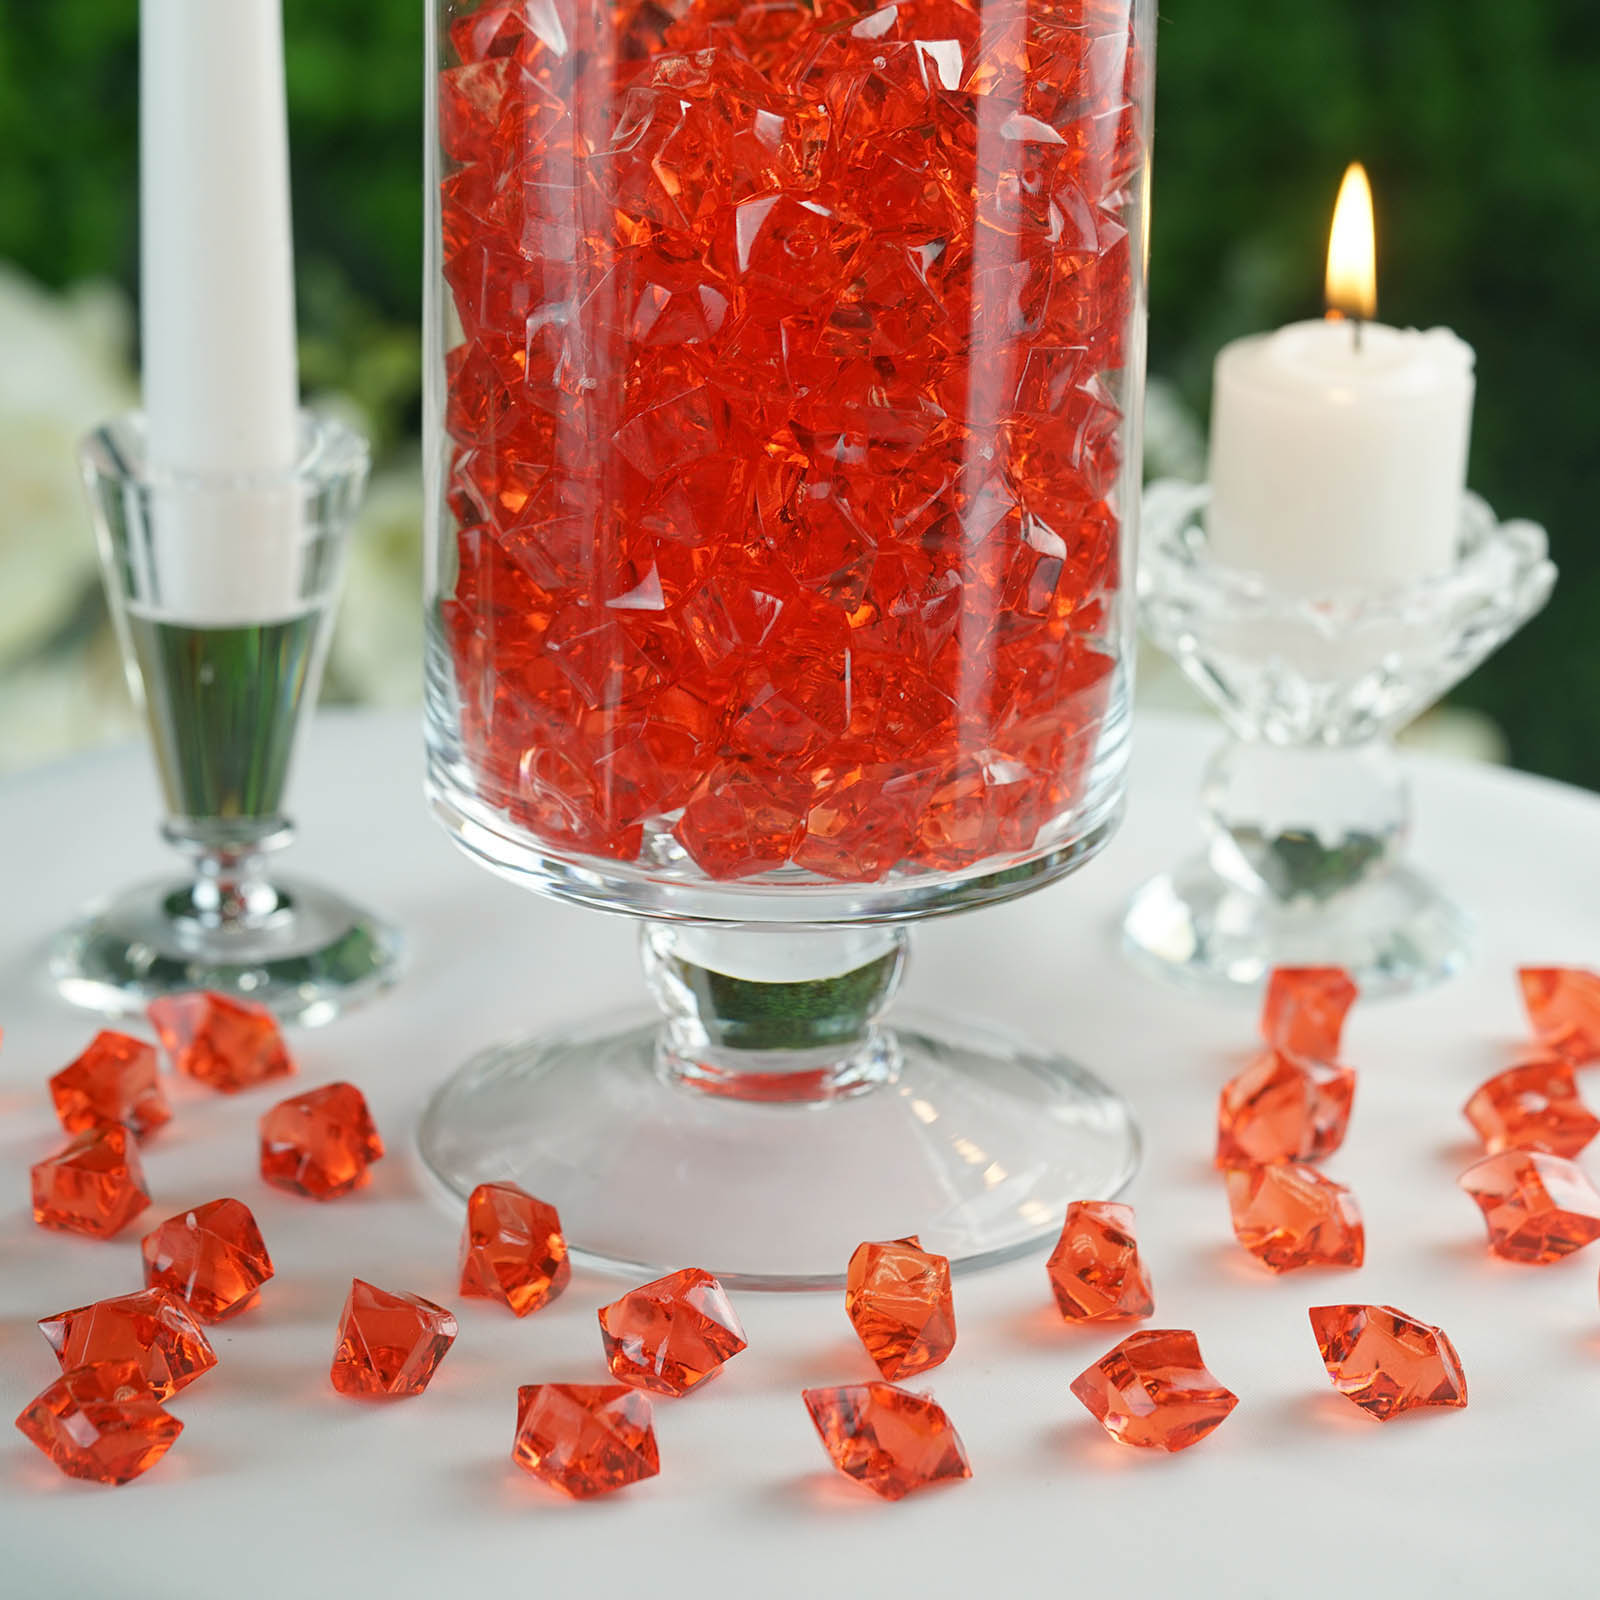 300-Acrylic-Ice-CRYSTAL-LIKE-Pieces-Wedding-Centerpieces-Decorations-Supplies thumbnail 54